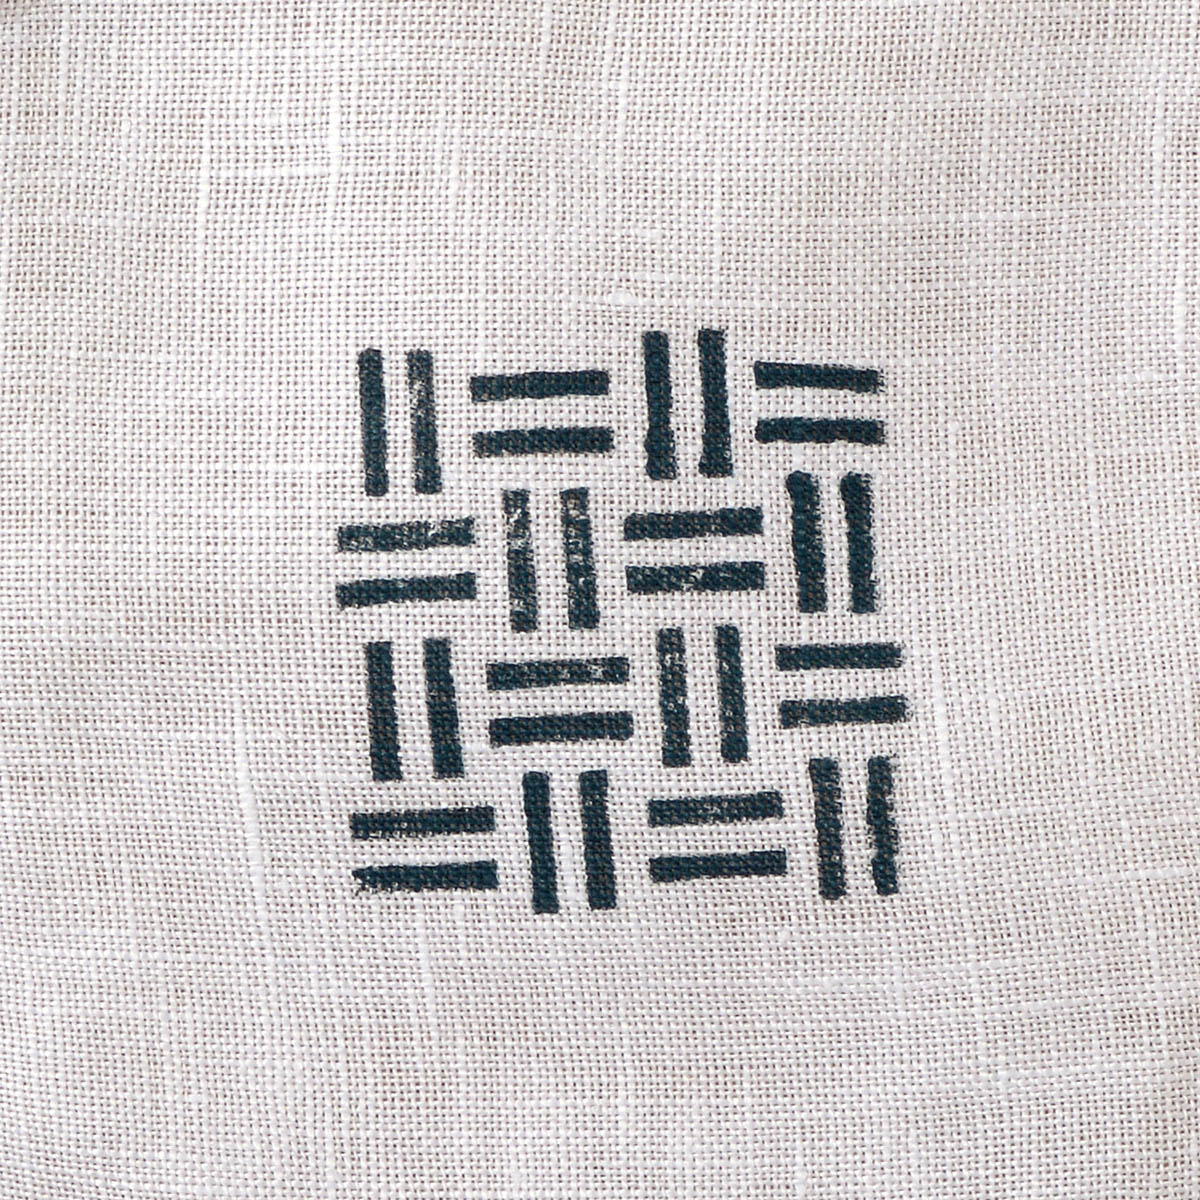 Fabric Creations™ Block Printing Stamps - Small - Basket Weave - 27193